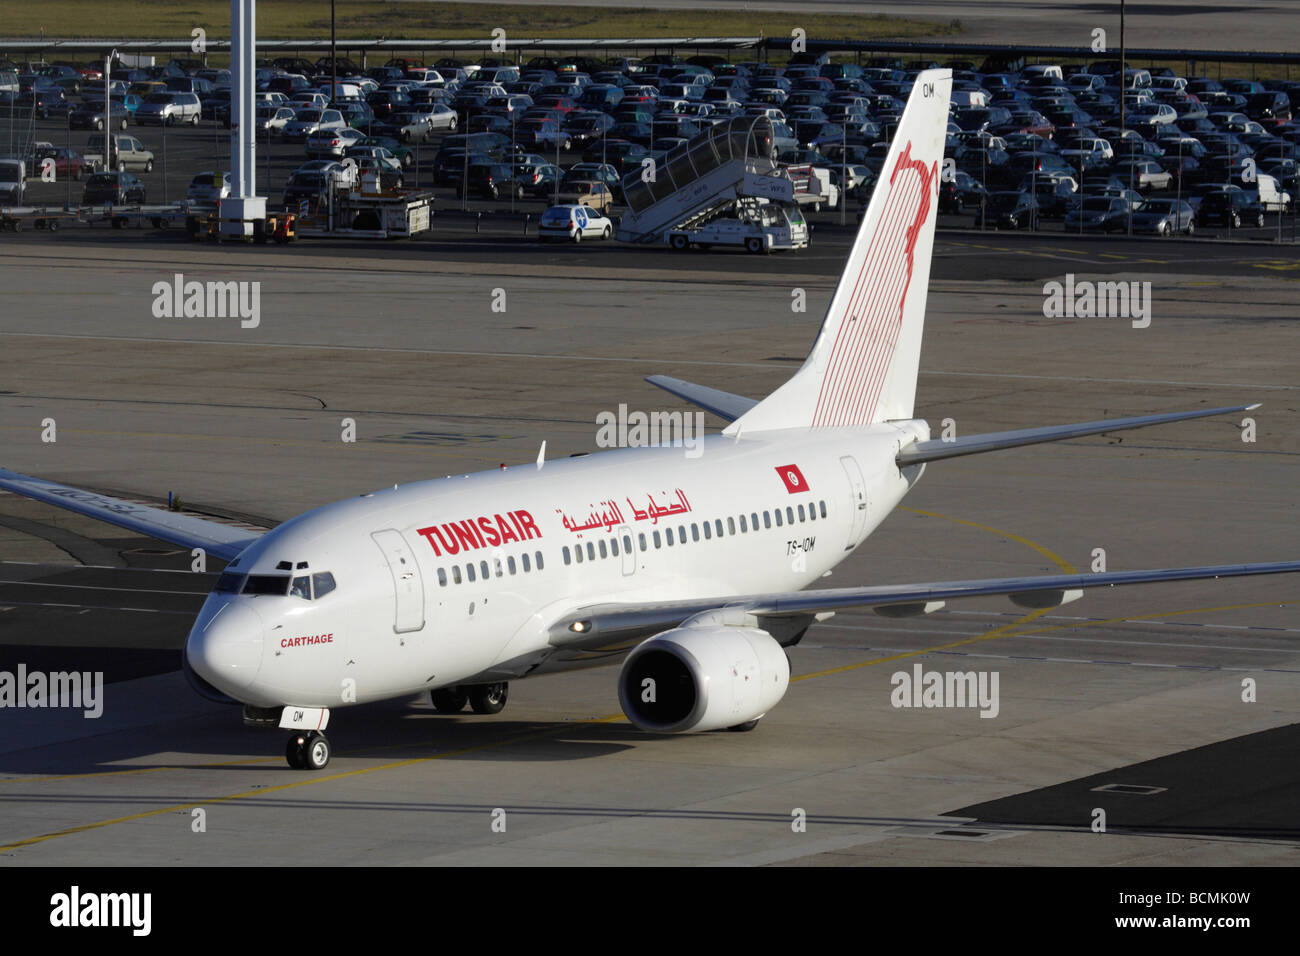 Tunisair Boeing 737-600 at Paris Orly Airport - Stock Image